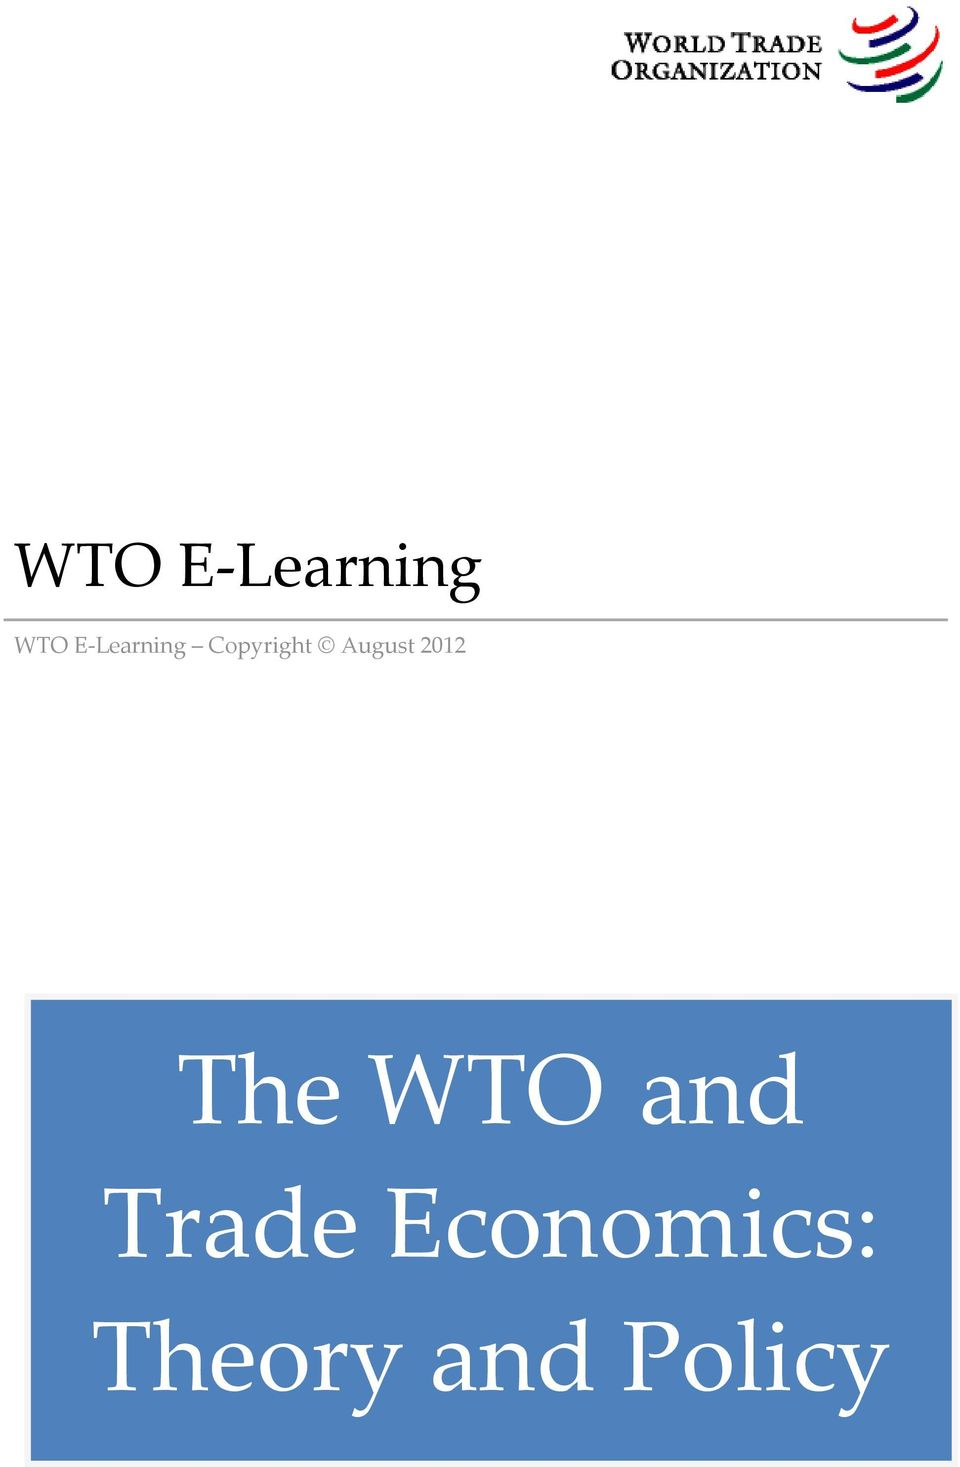 August 2012 The WTO and